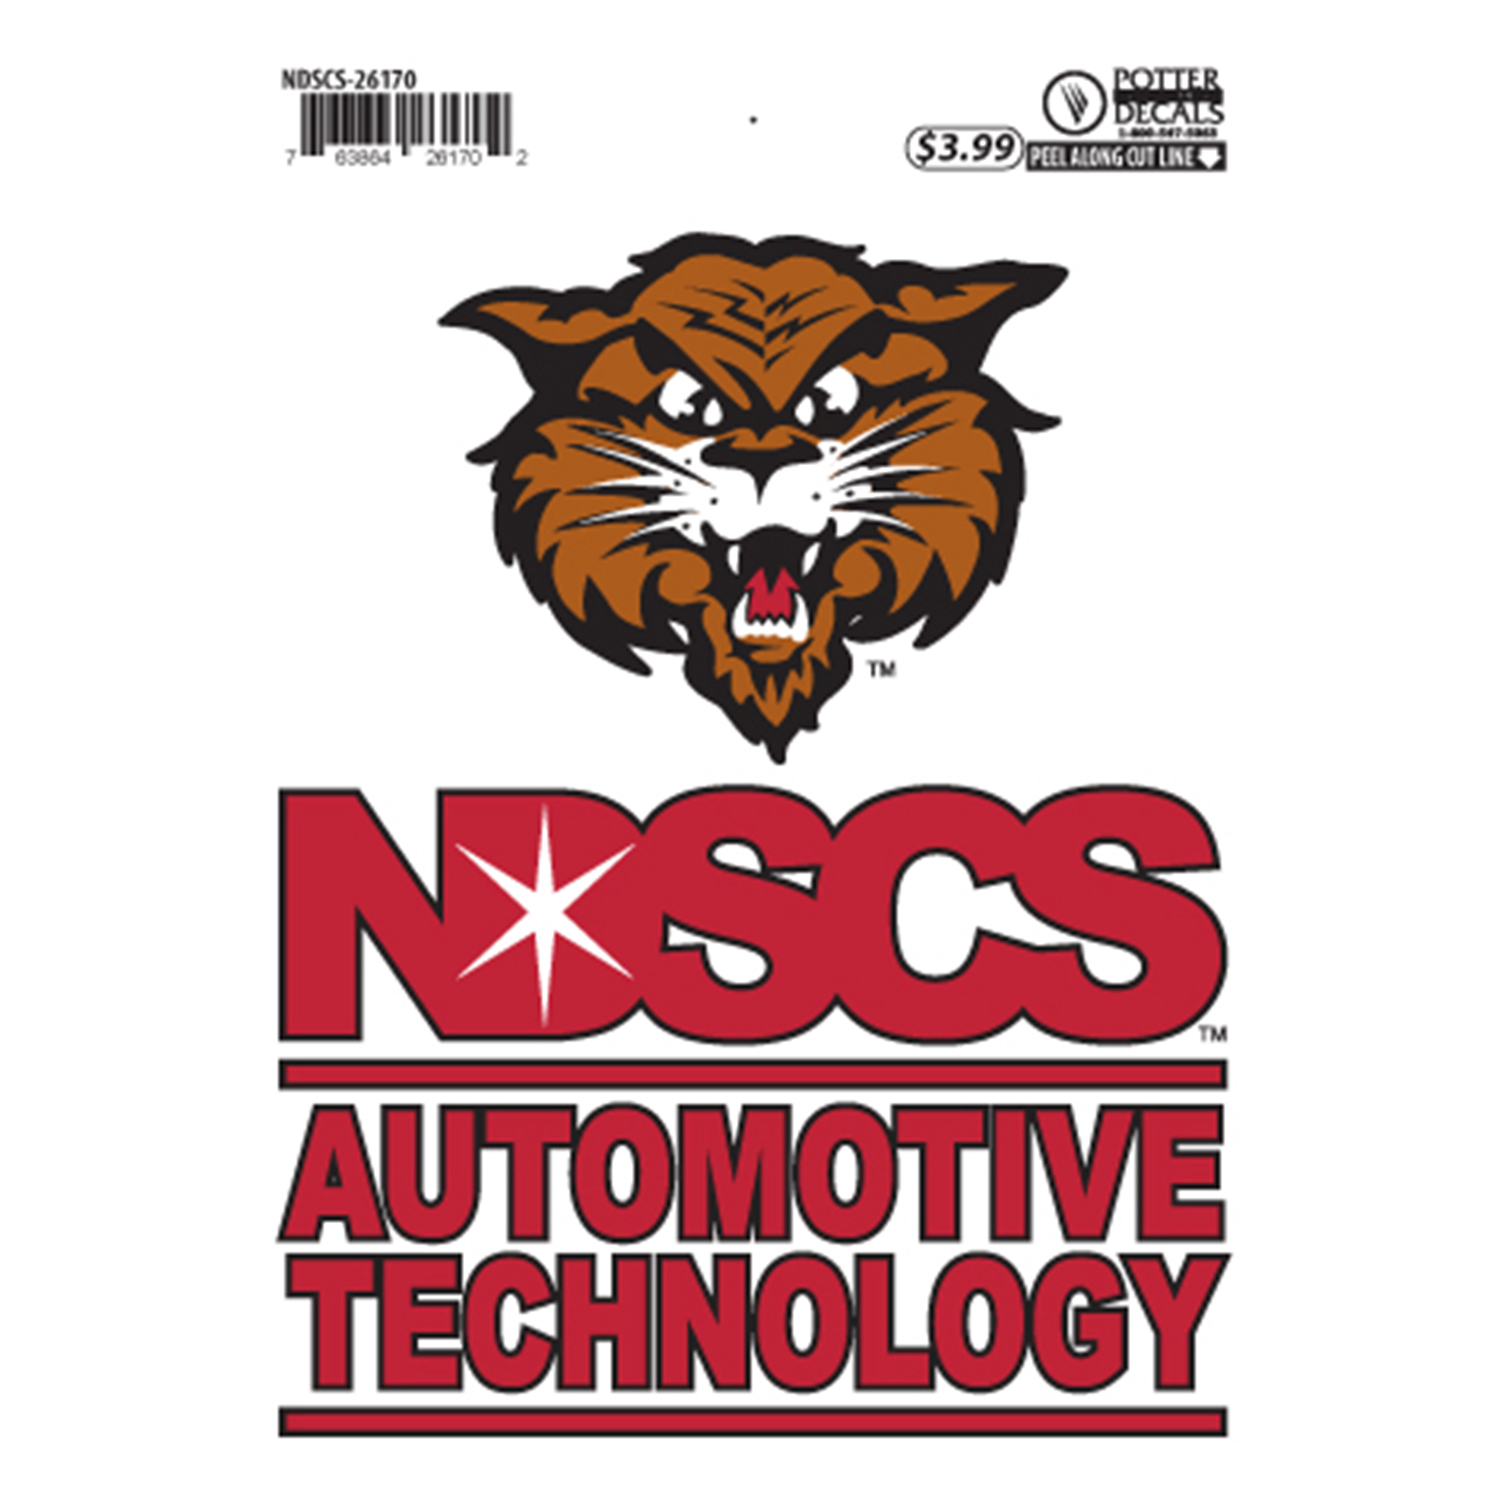 "Image For ""Automotive Technology"" Decal by Potter"